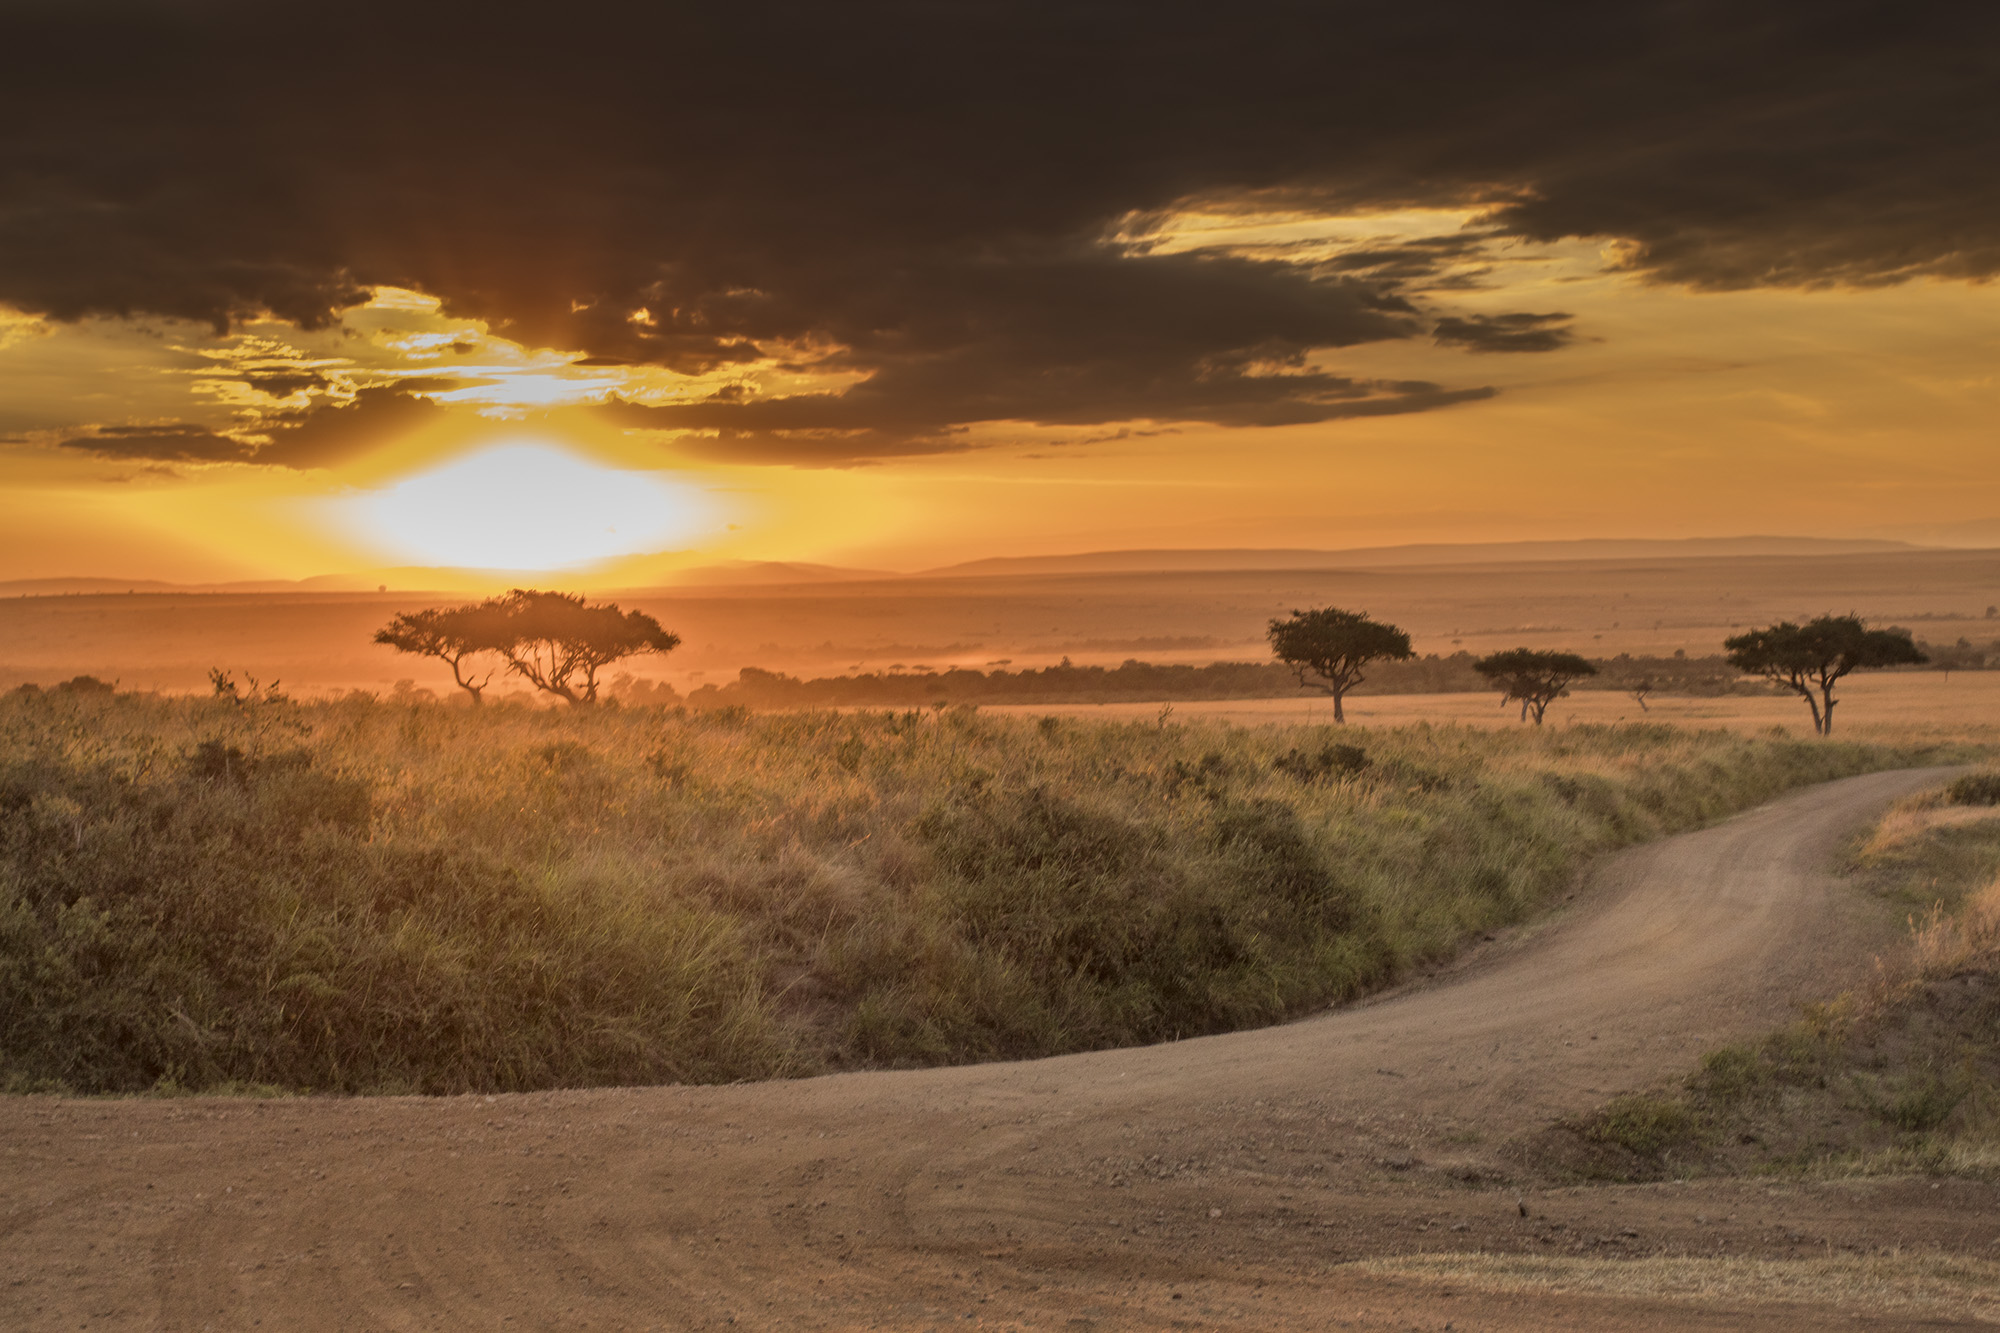 A sunrise over Masai Mara in Kenya